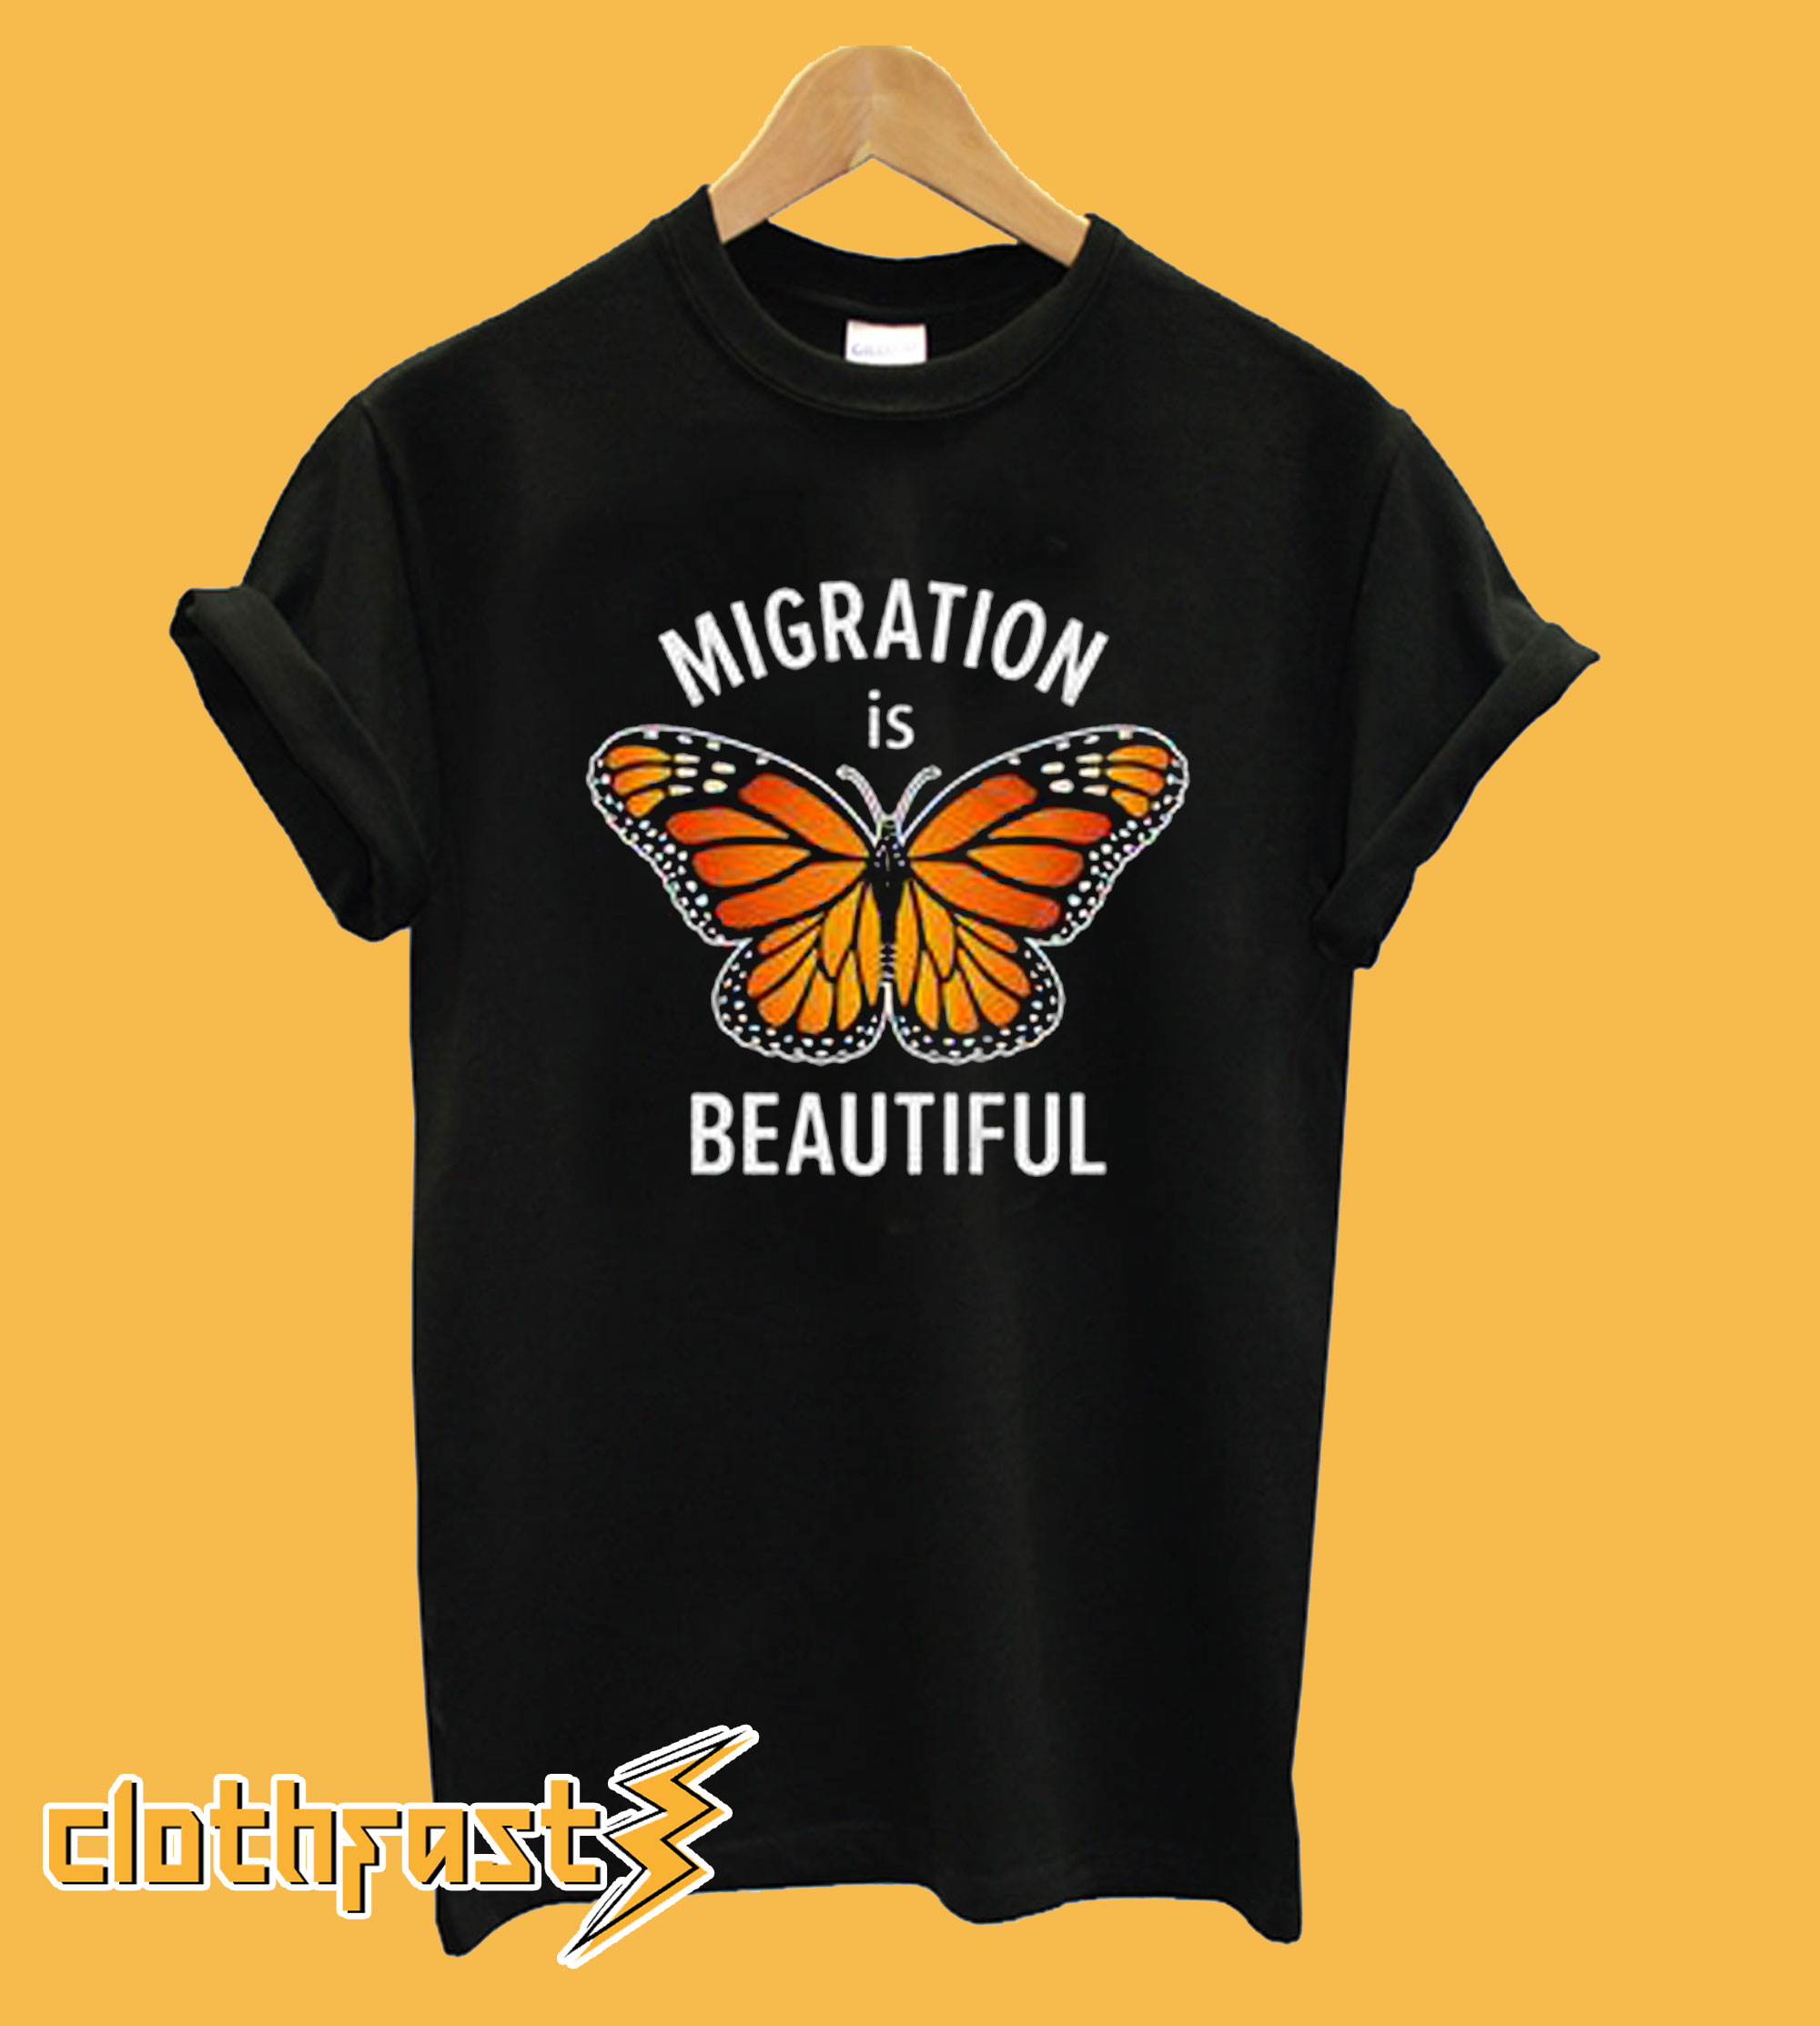 Migration is Beautiful T-shirt